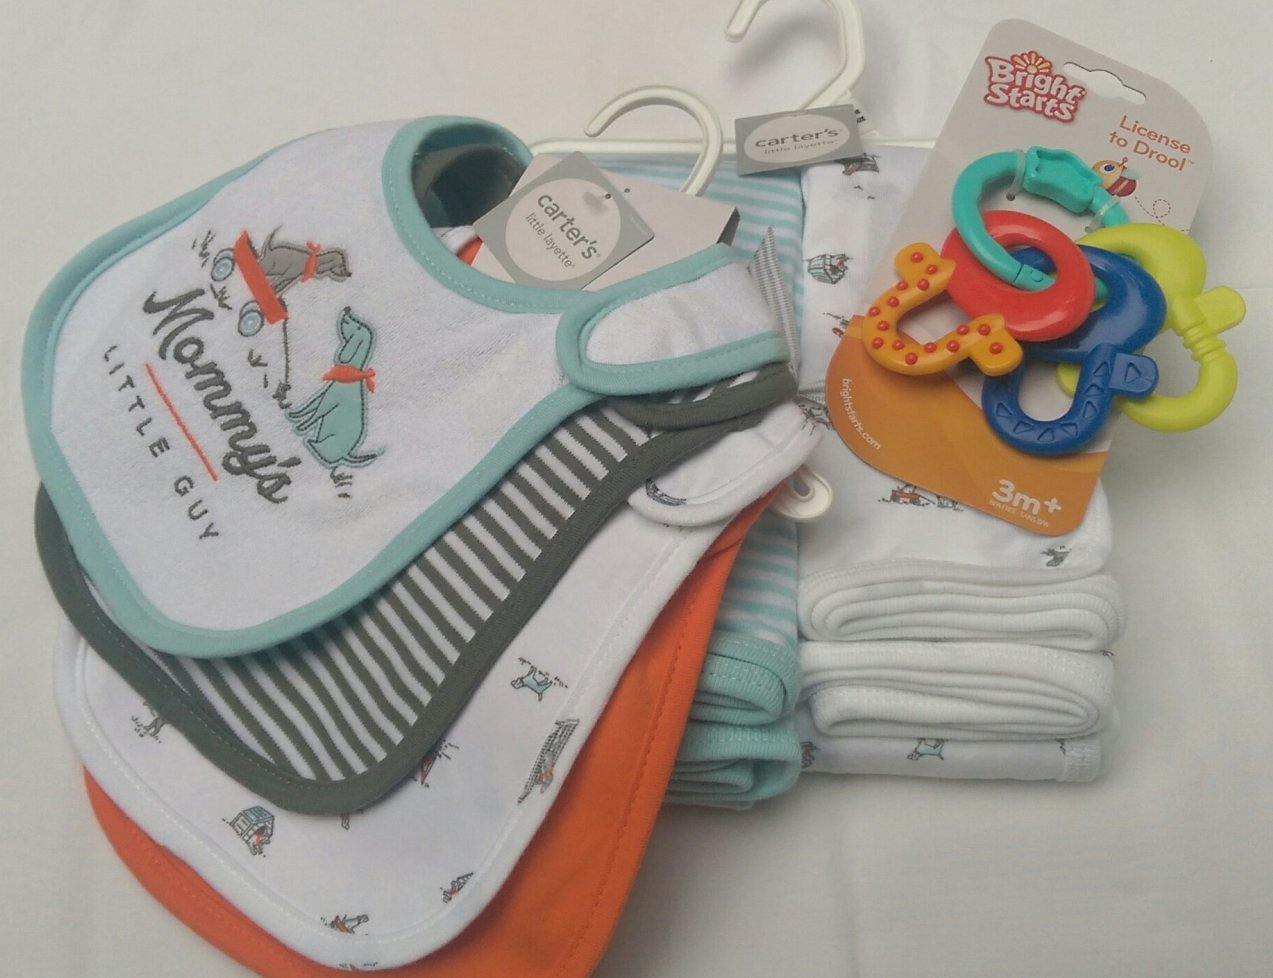 Baby Gift Bundle - 3 Items: Carter's Baby Boy Little Layette Blankets 2-pack, Carter's Baby Bibs 4-pack, and Bight Starts Baby Teething Keys.